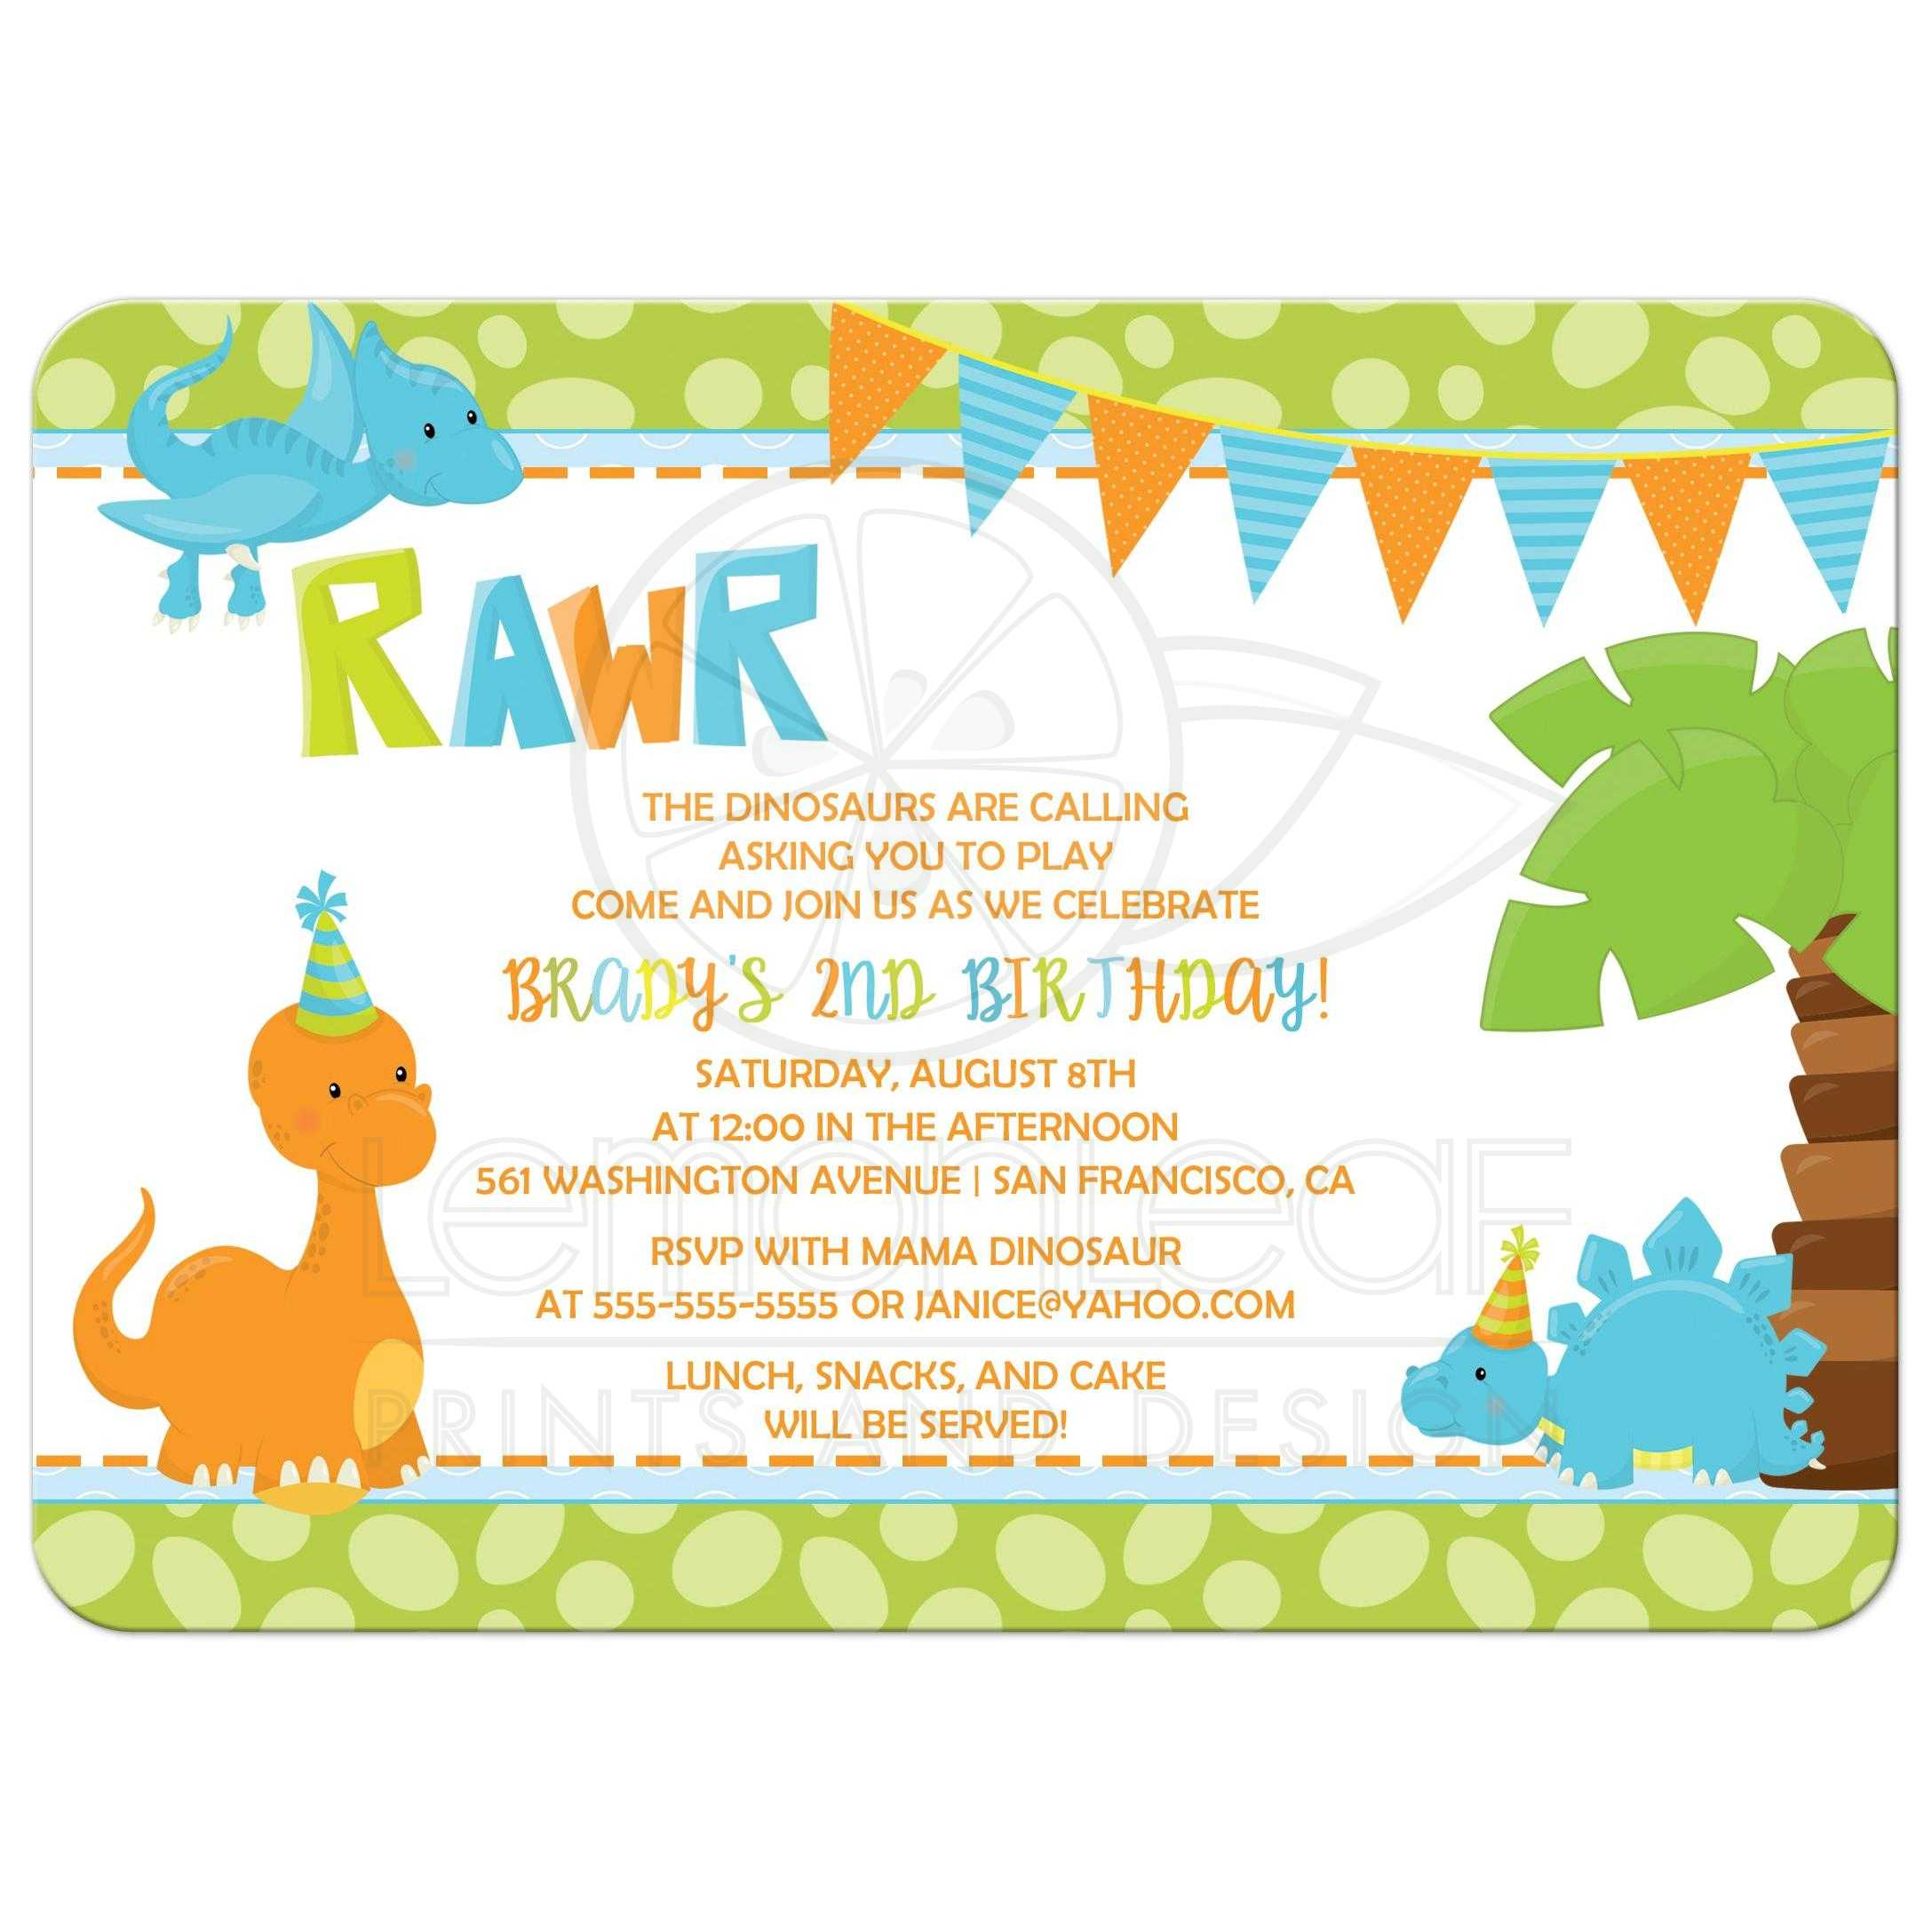 Birthday Party Invitation - Boy Dinosaur in Orange, Blue, and Green